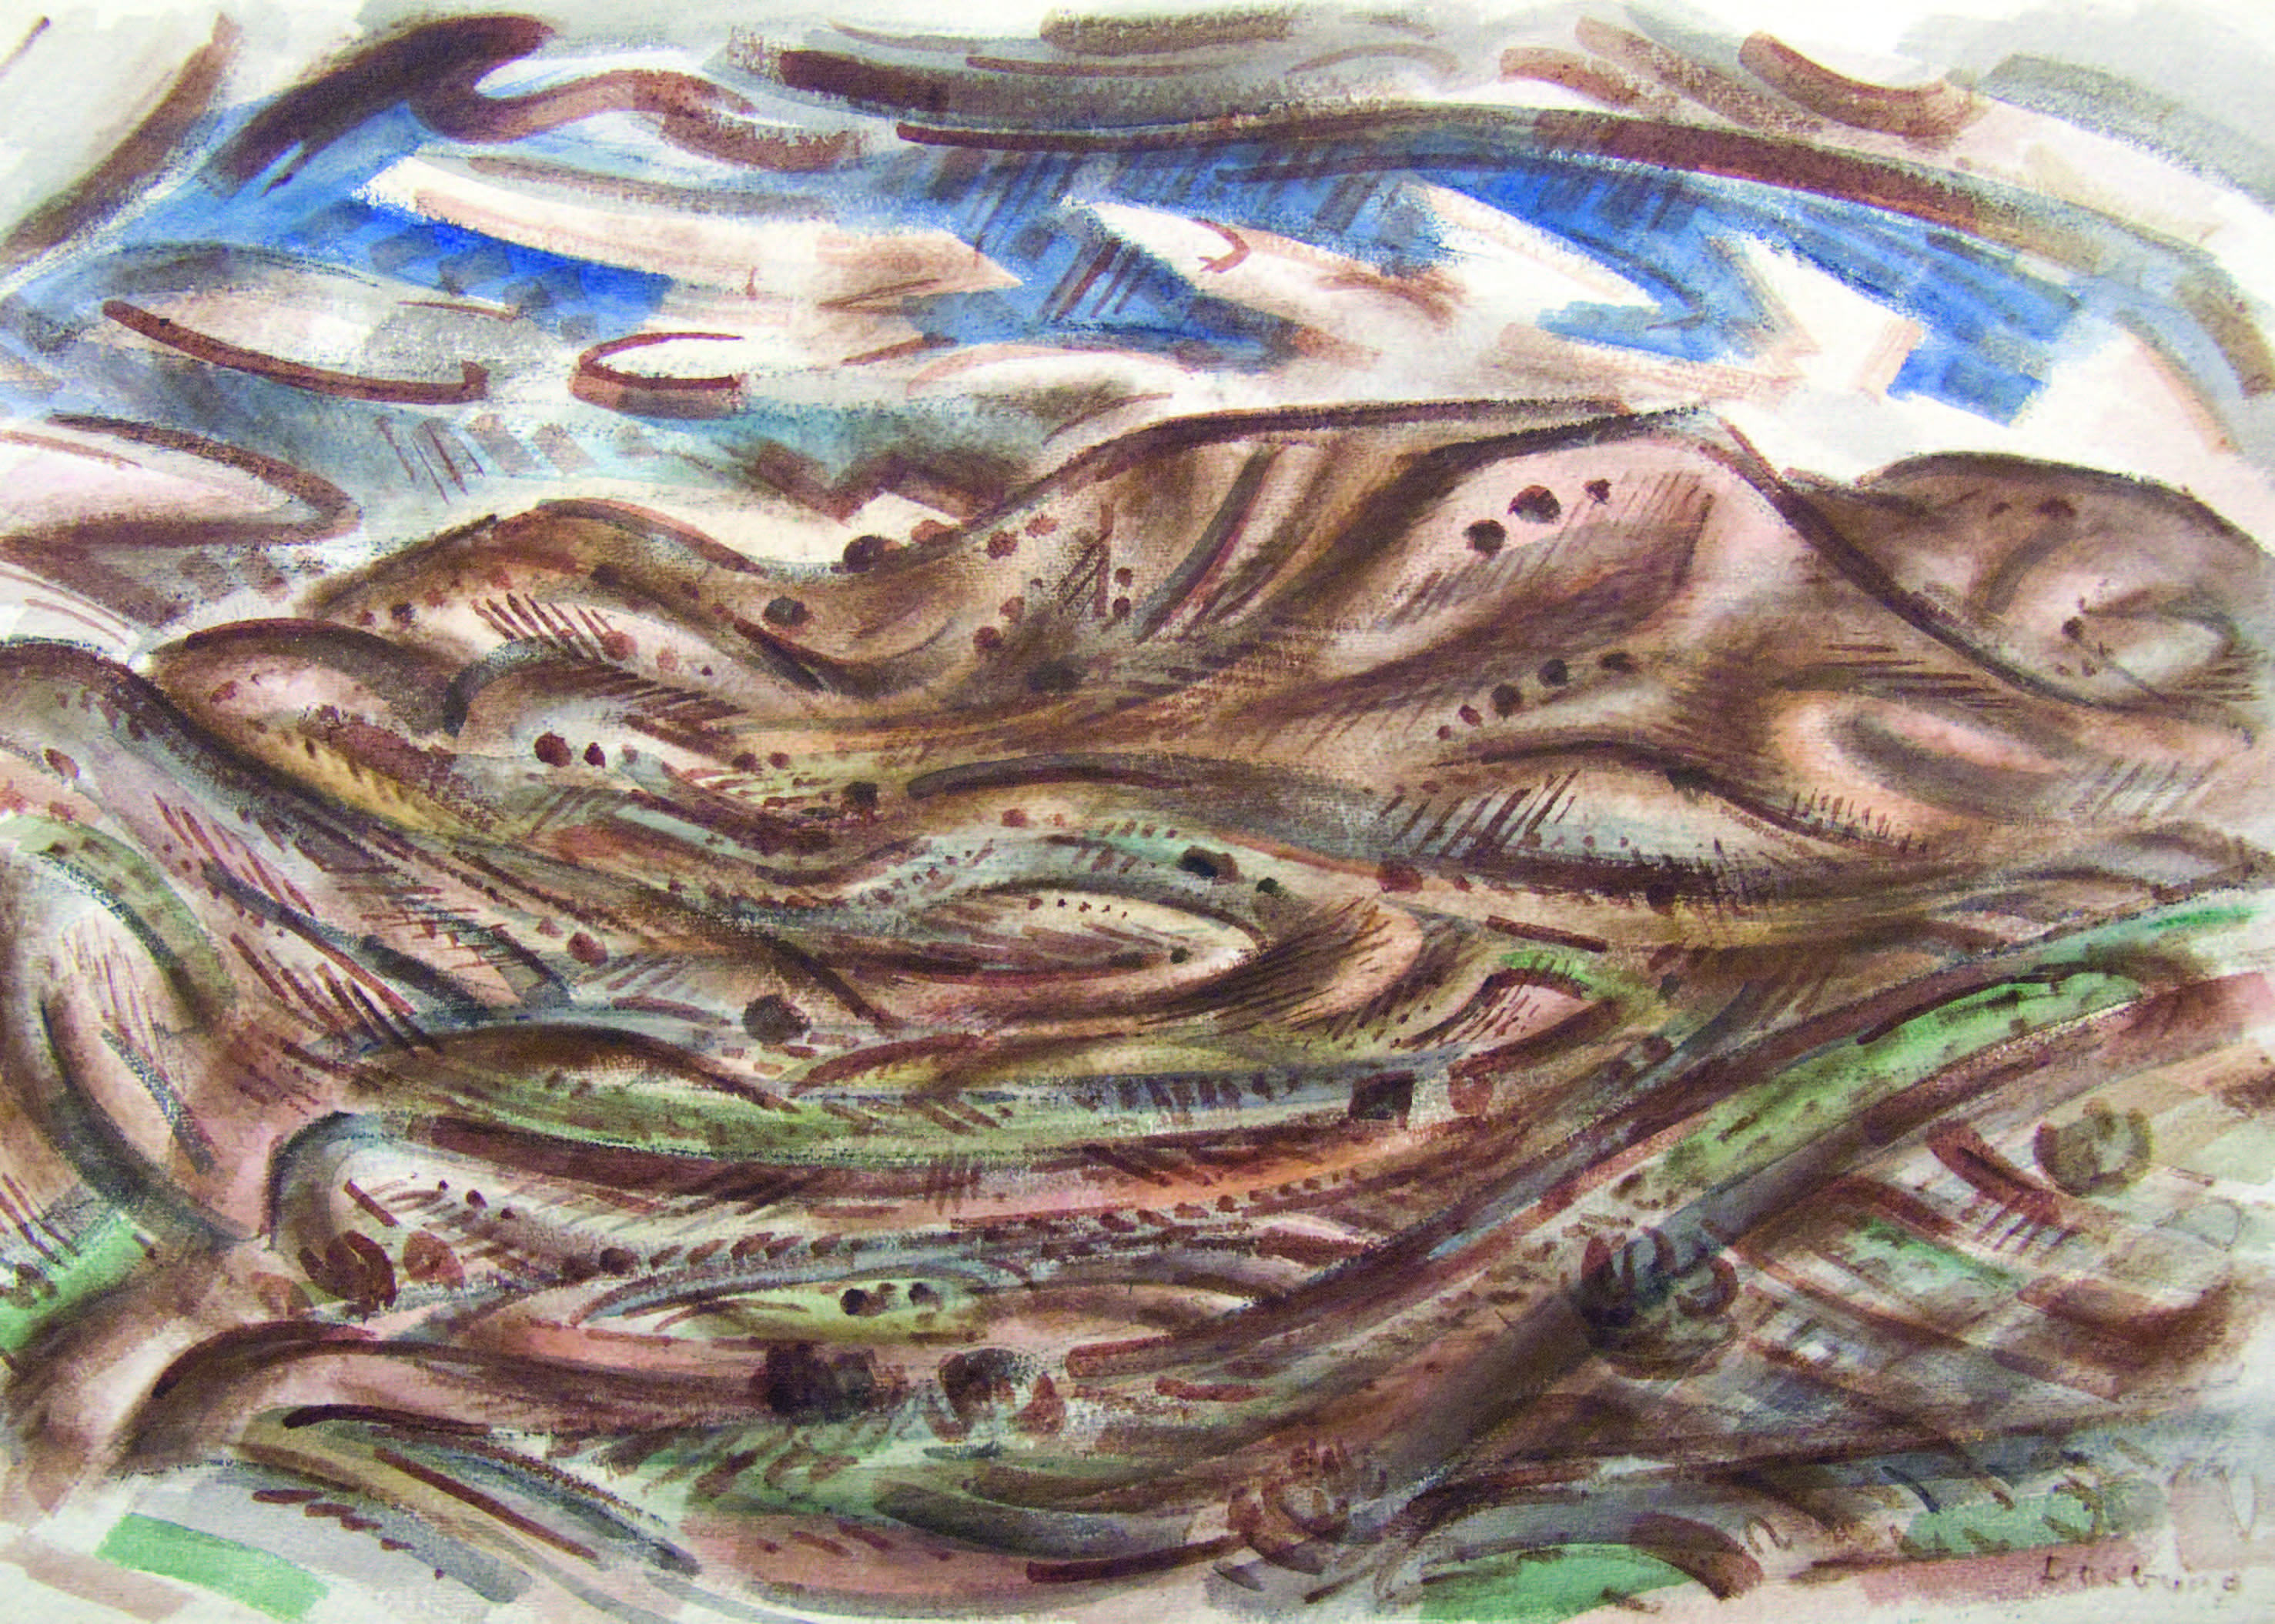 Andrew Dasburg, Sangre de Cristo, ca. 1933. Watercolor, 15 1⁄8 × 21 5⁄8 in. Collection of the New Mexico Museum of Art. Gift of Mr. Edwin F. Gamble, 1968 (2235.23P). Photograph by Blair Clark.